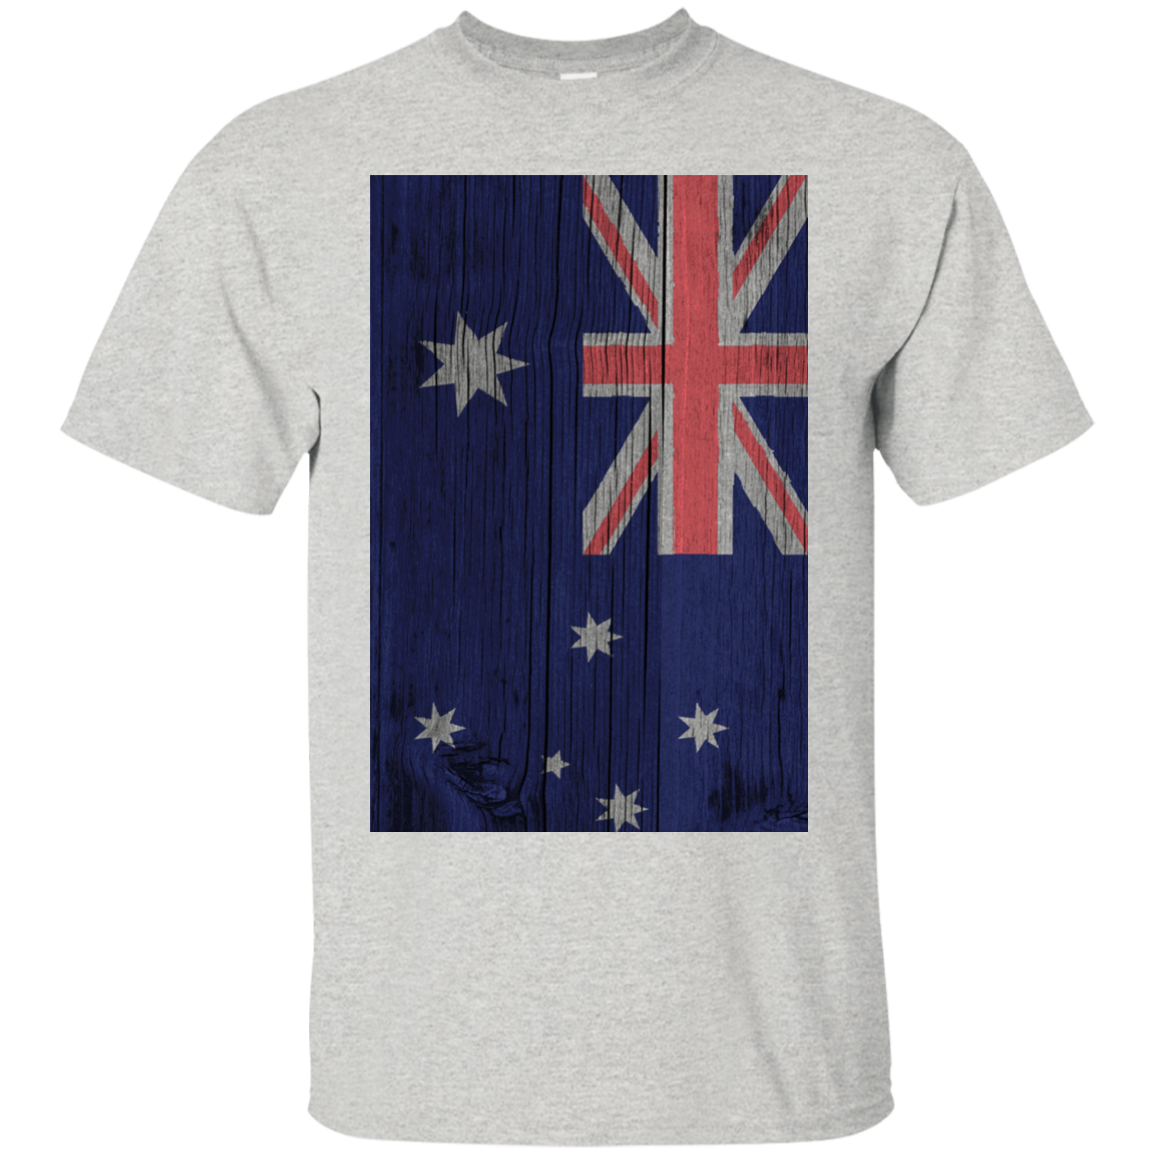 Australia Flag Painted on Wood T-Shirt & Hoodie, Sweatshirt